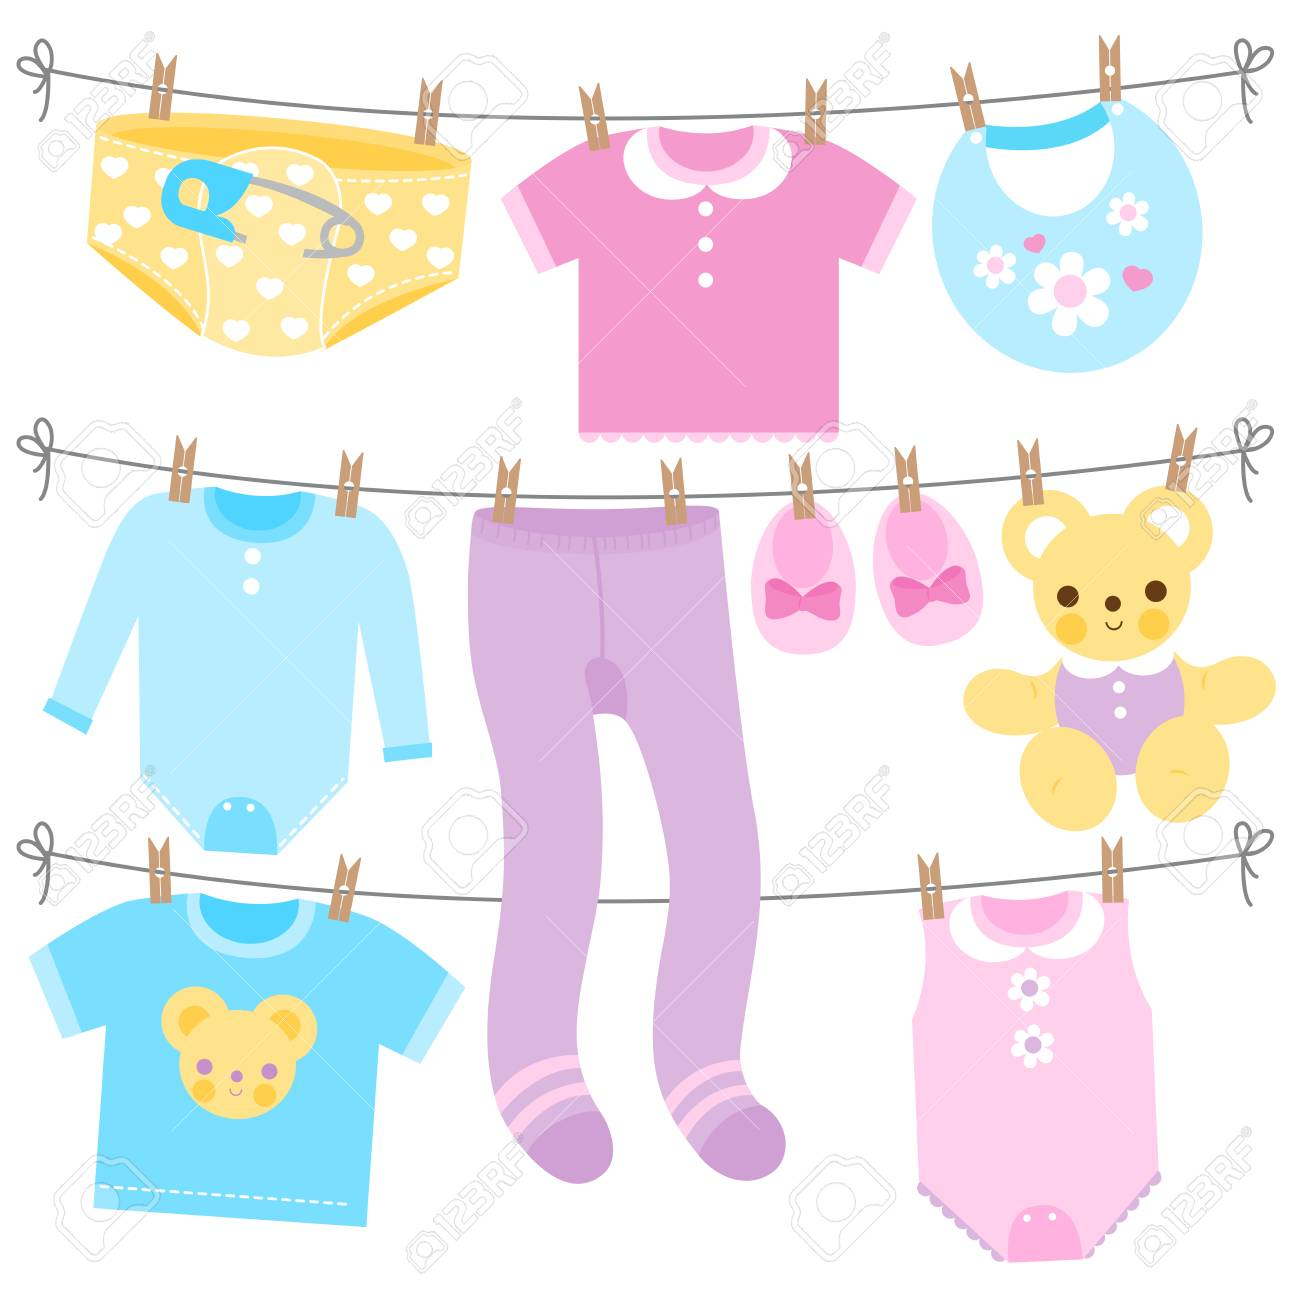 baby girl and baby boy clothes collection hanging on clothes rh 123rf com baby shower clothesline clipart baby boy clothesline clipart